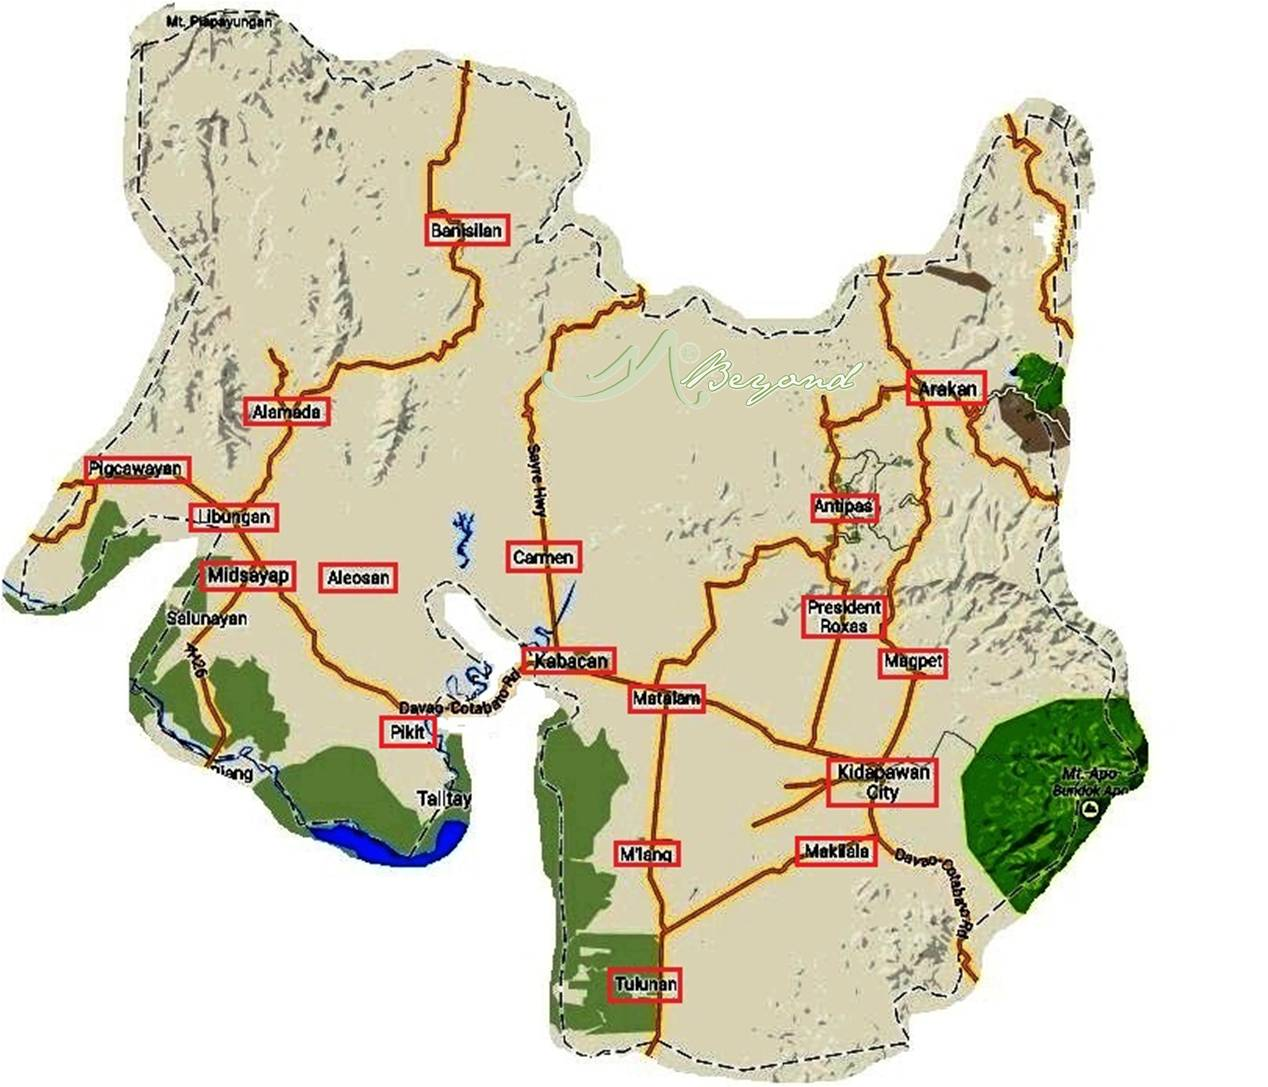 north cotabato map, cotabato map, kidapawan map, map north cotabato, map cotabato, aladama map, alamada north cotabato